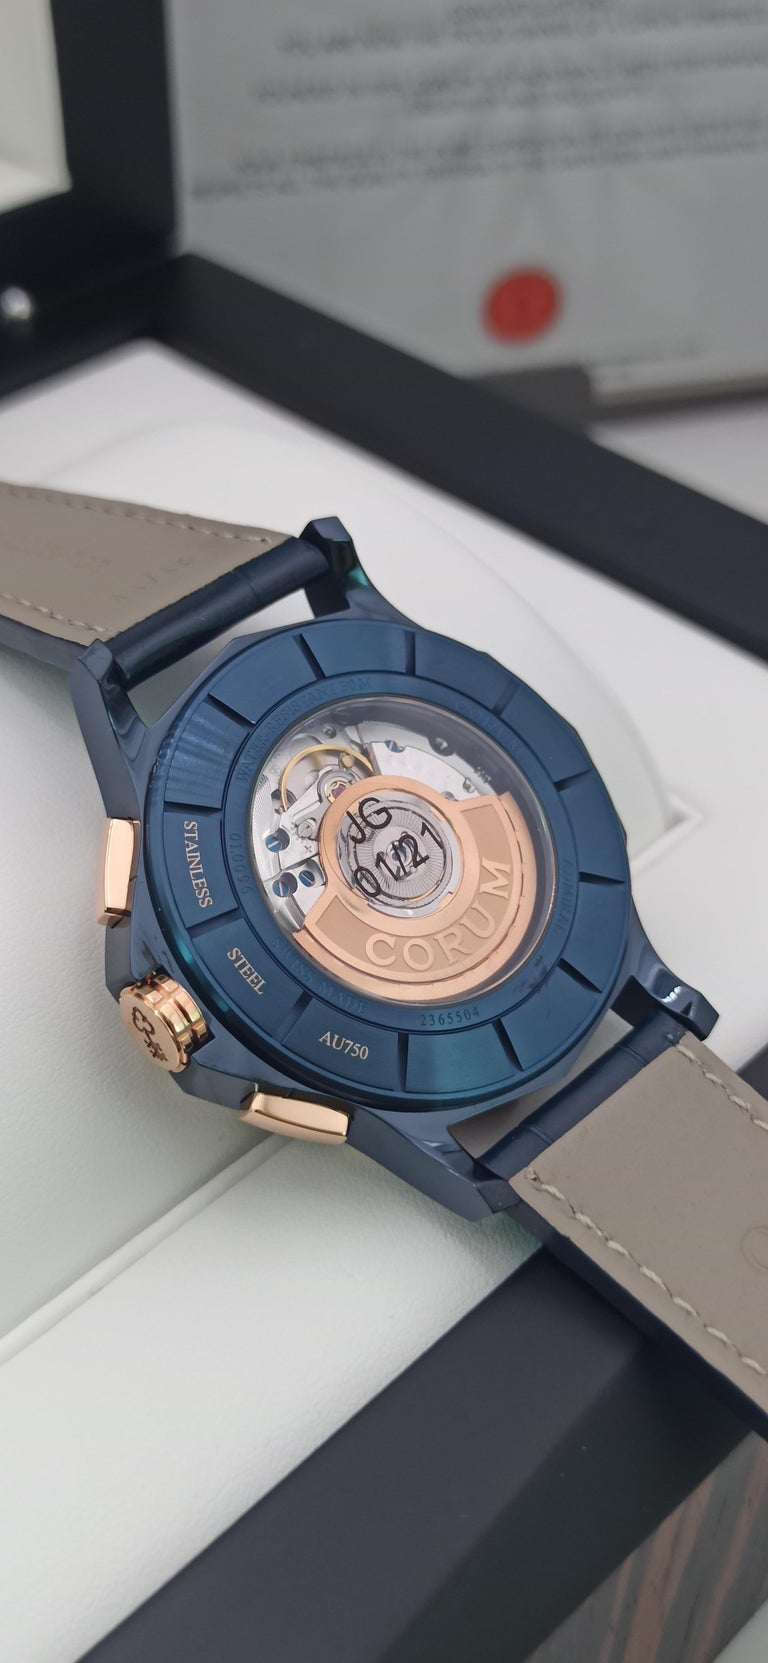 Corum Admiral Cup, Chronograph, 18kt Rose Gold and PVD Steel Case For Sale 1